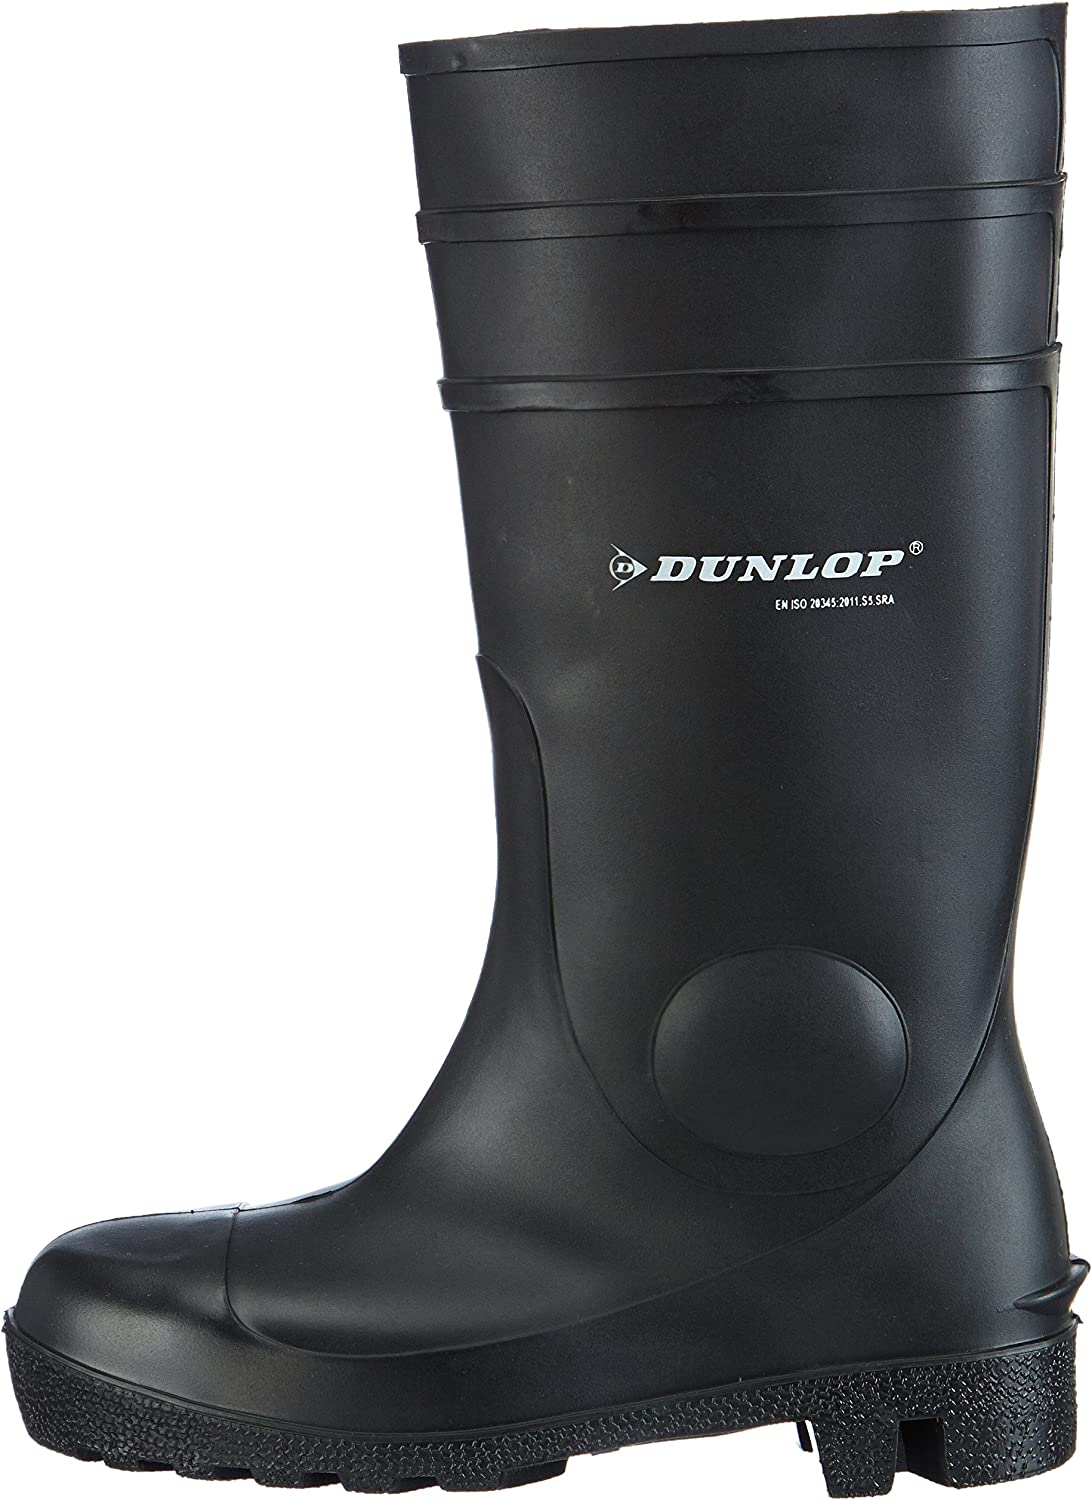 Dunlop Protective Footwear Unisex Adults/' Dunlop Protomastor142pp Safety Boots